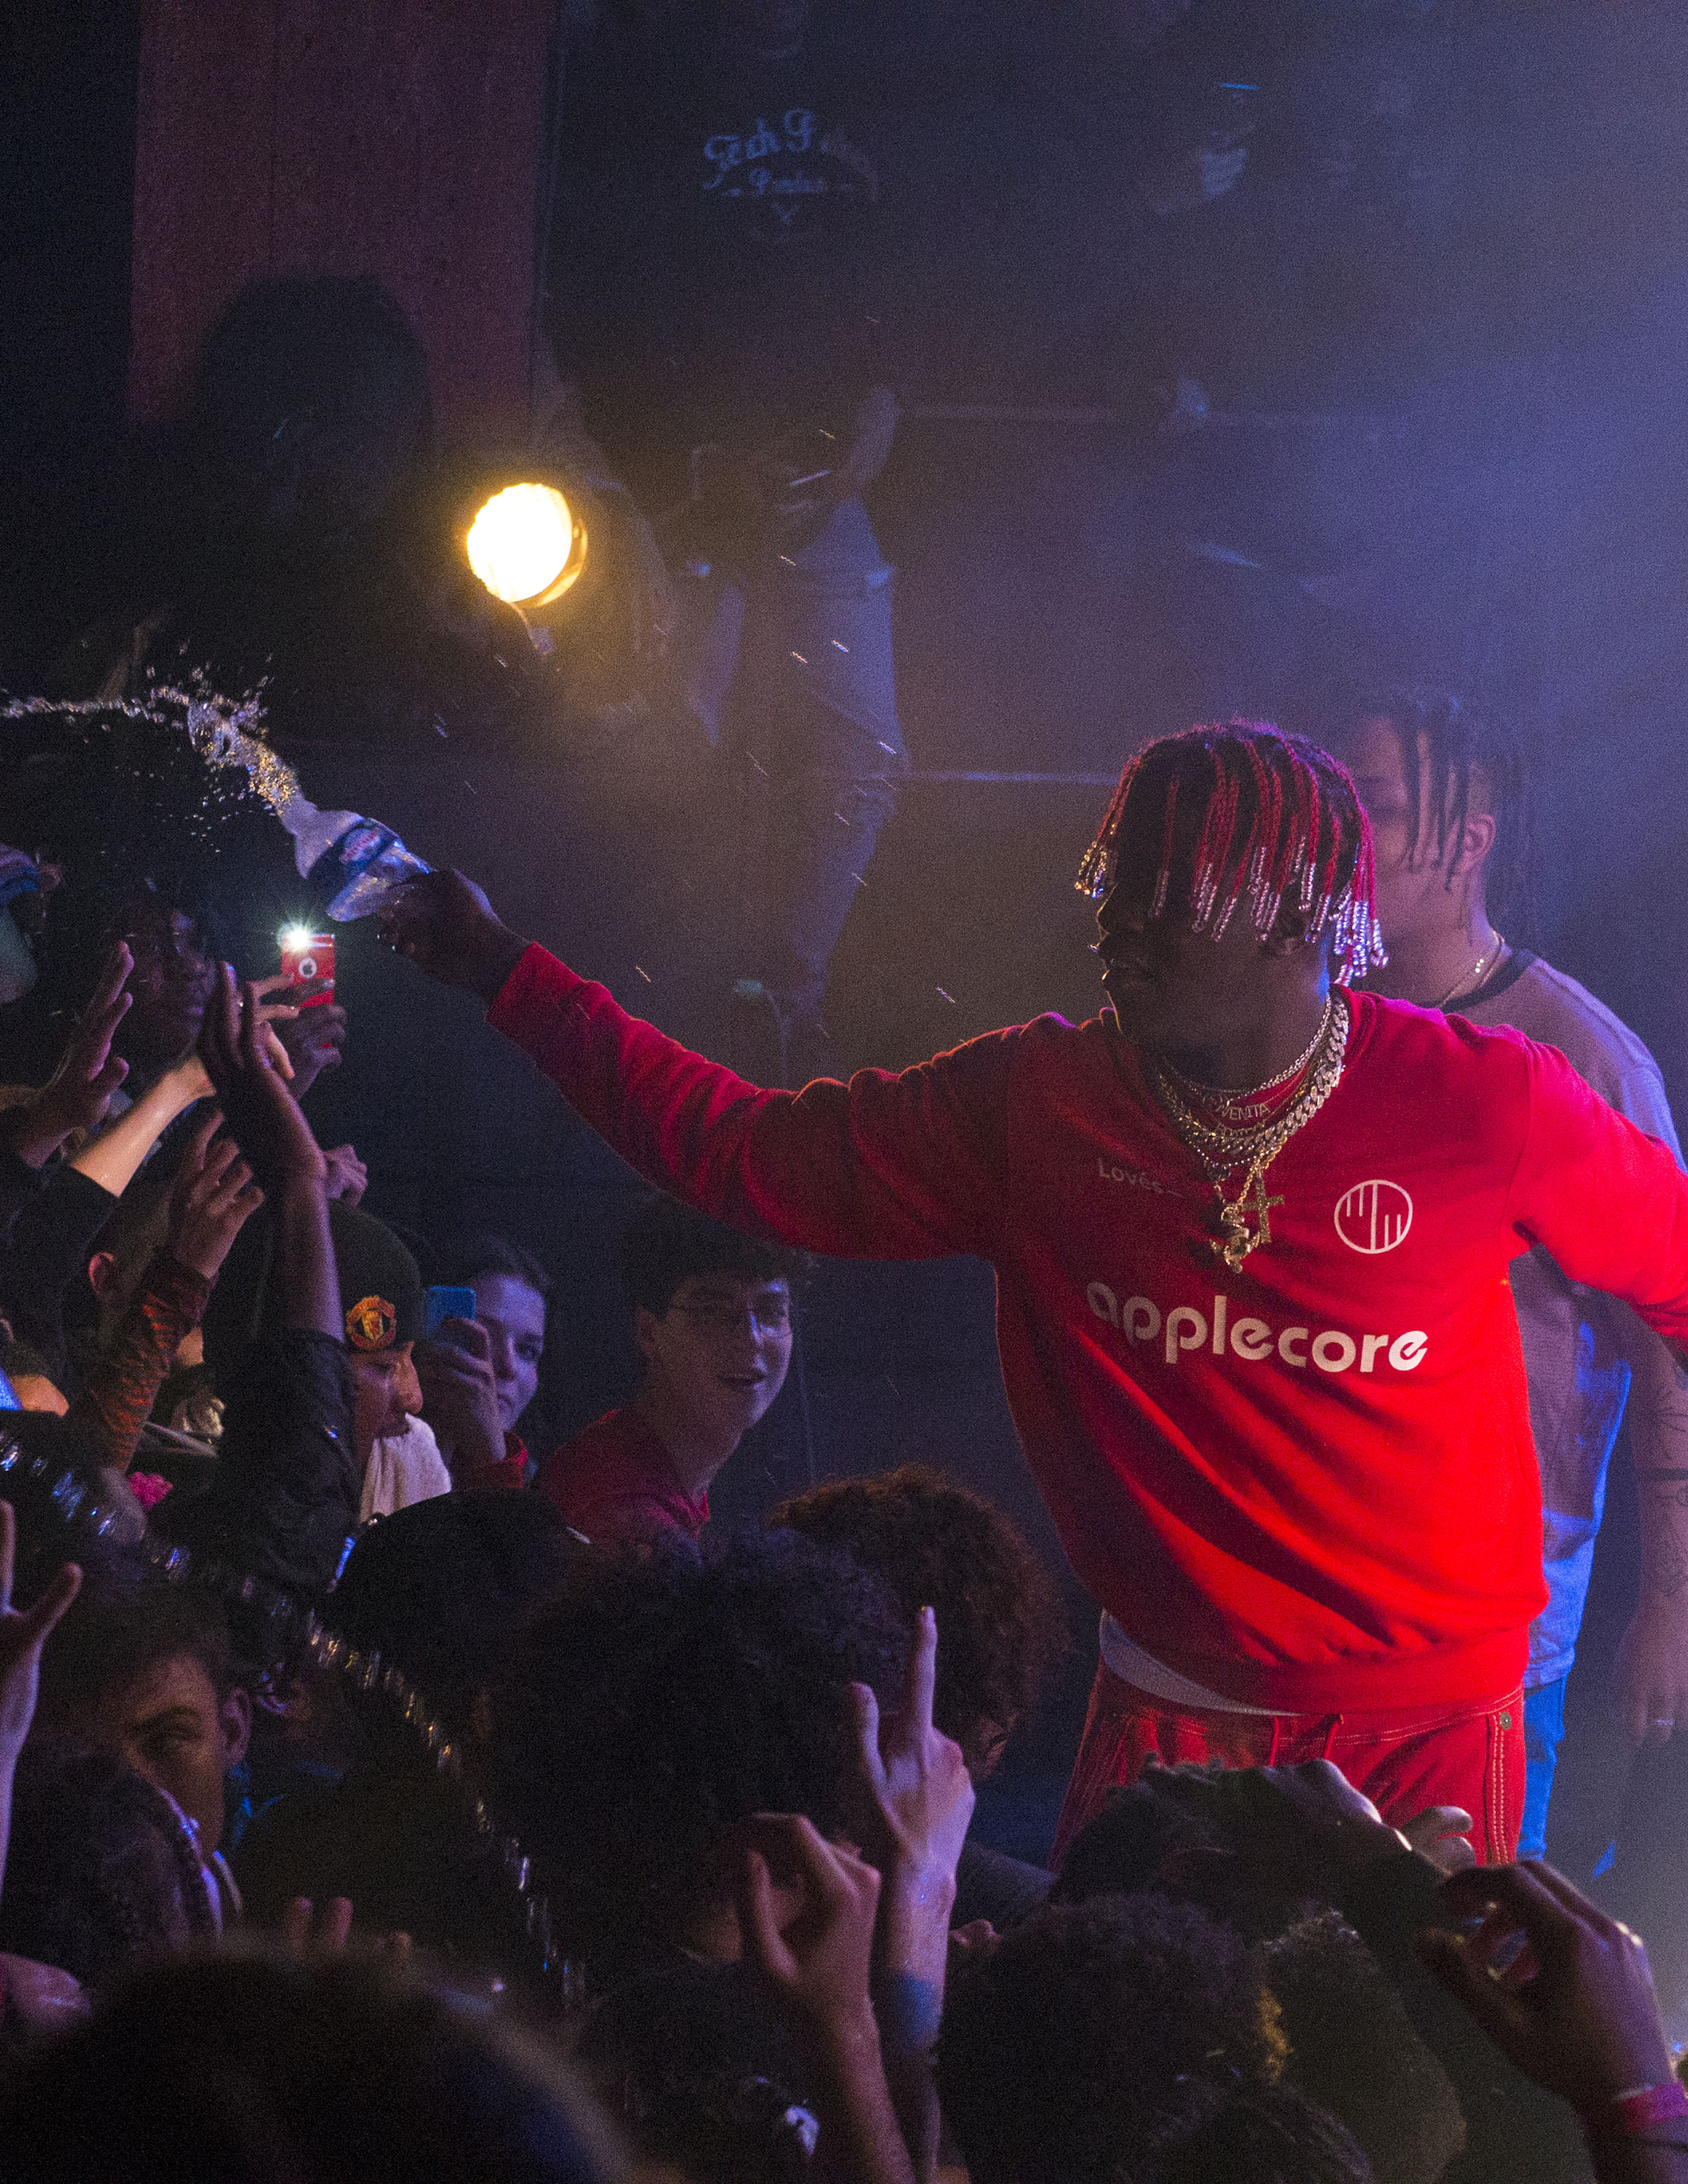 SPOTTED: Lil Yatchy Performs In Paris Wearing Applecore